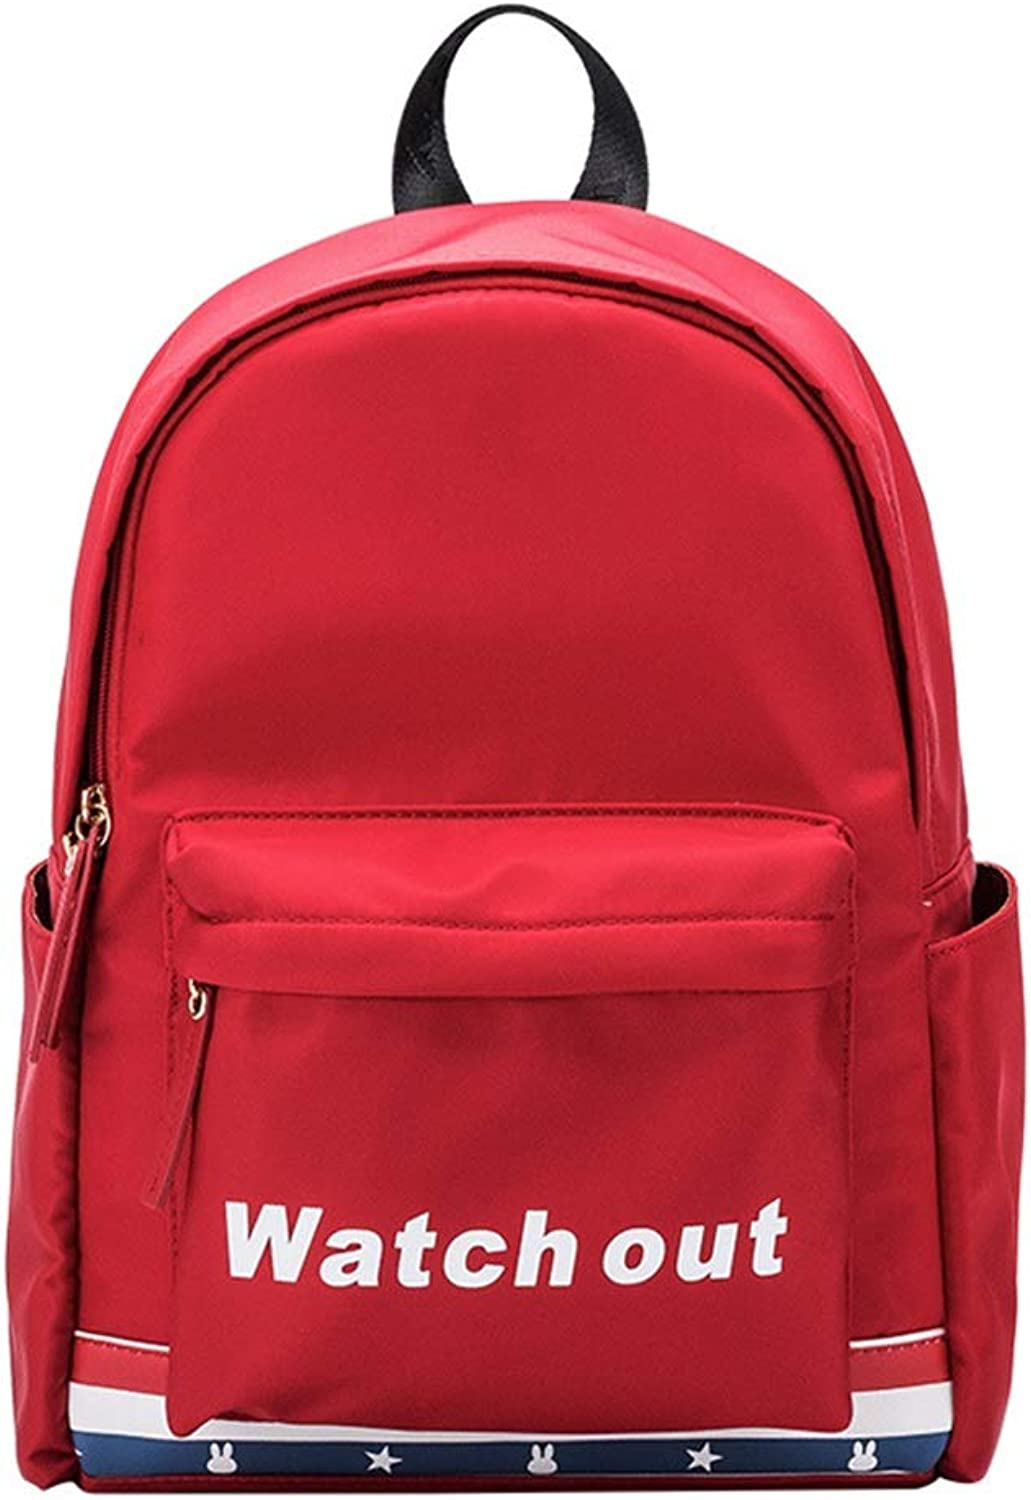 Women's New Double Shoulder Bag Girls School Bag College Trend Wild Fashion Campus Student Travel Backpack forFemale (color   Red, Size   25.5cm12cm38cm)